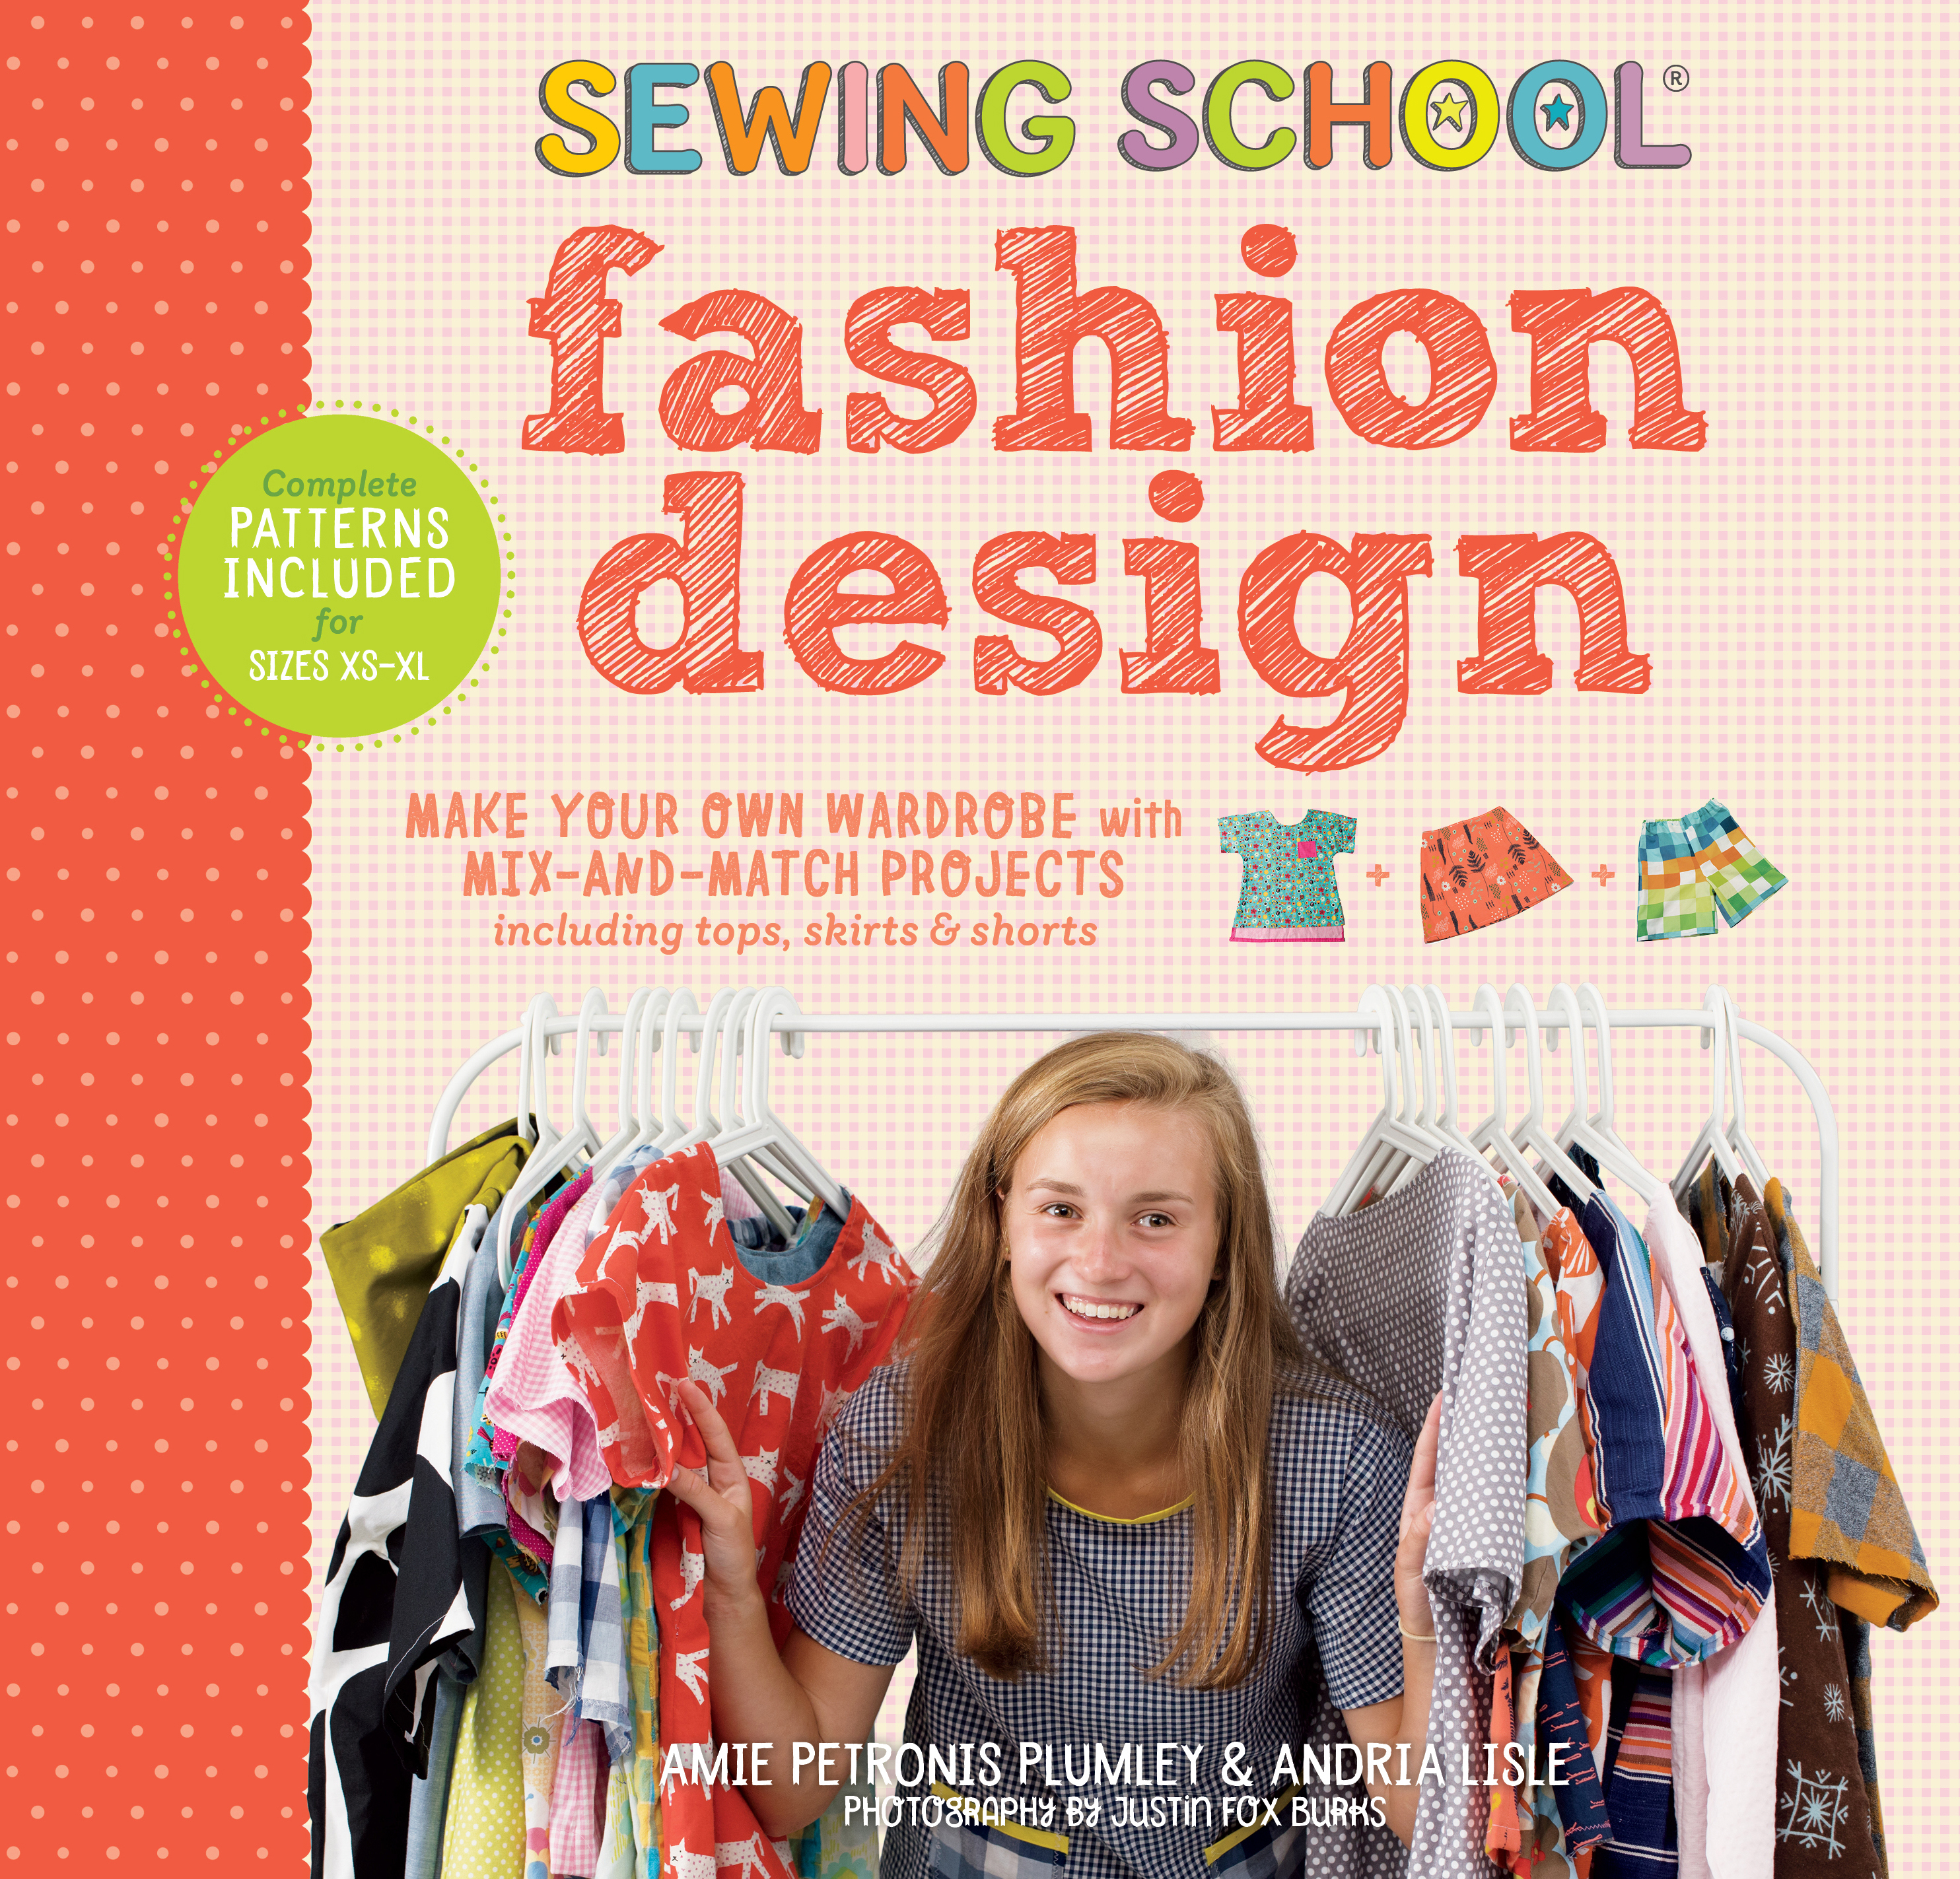 Sewing School <sup>&reg;</sup> Fashion Design Make Your Own Wardrobe with Mix-and-Match Projects Including Tops, Skirts & Shorts - Amie Petronis Plumley